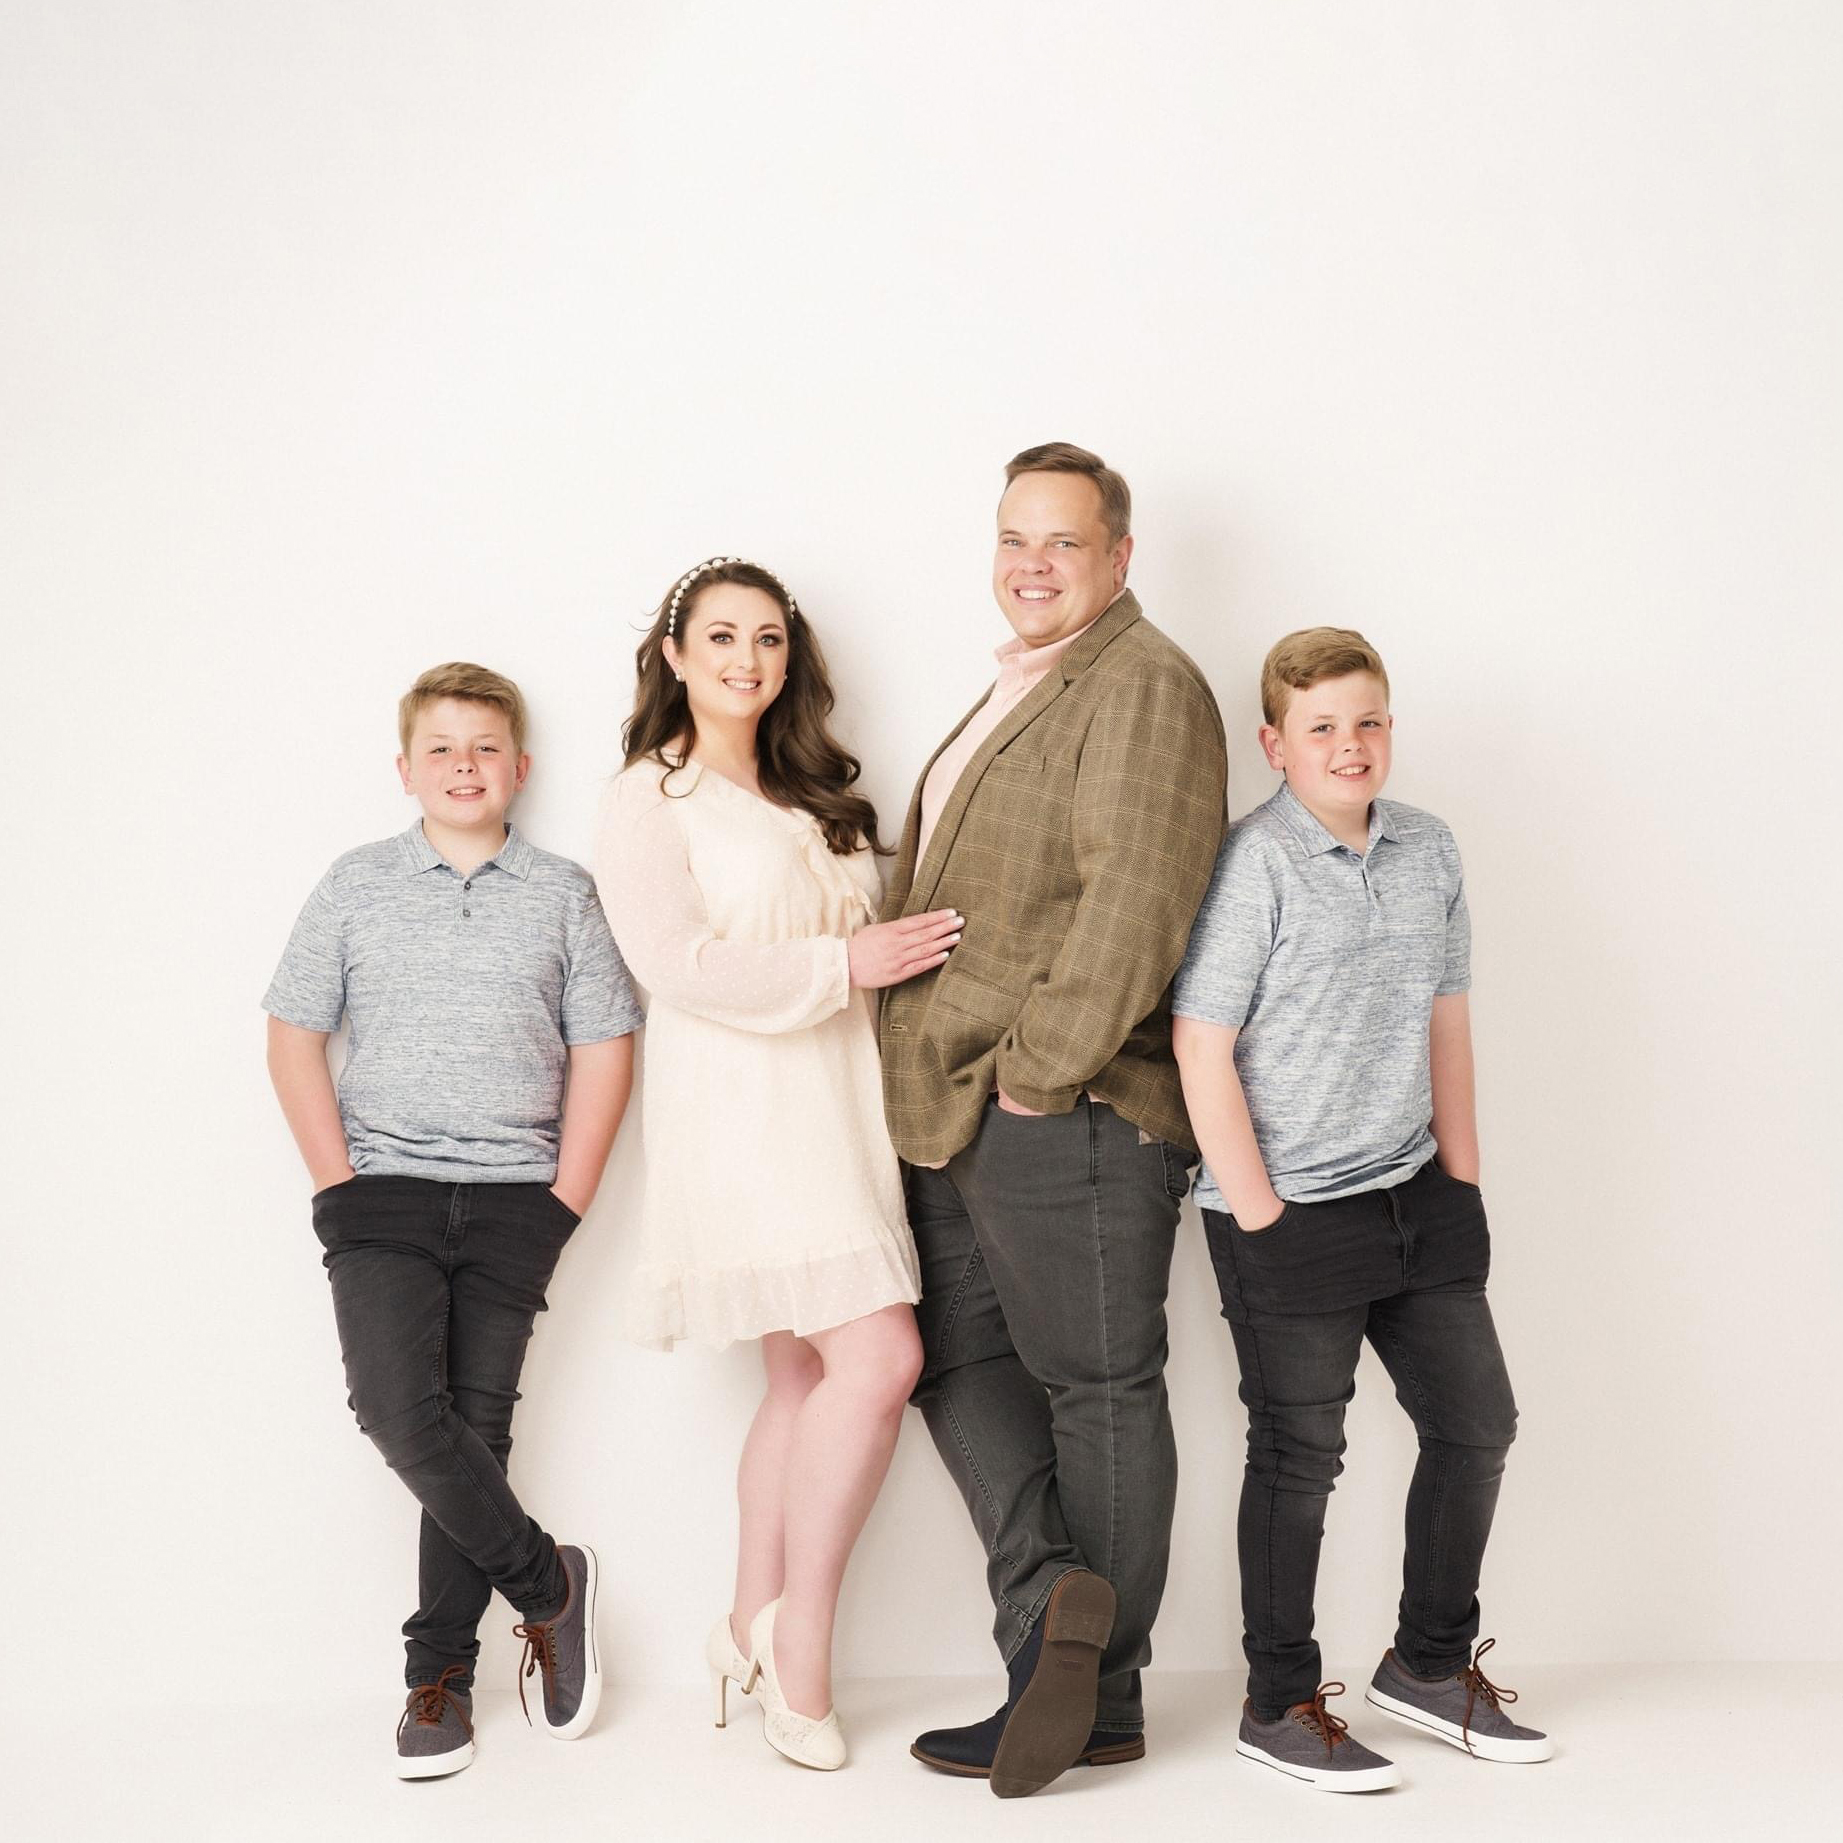 family of four in photography studio on white background by Family photographer in preston lancashire